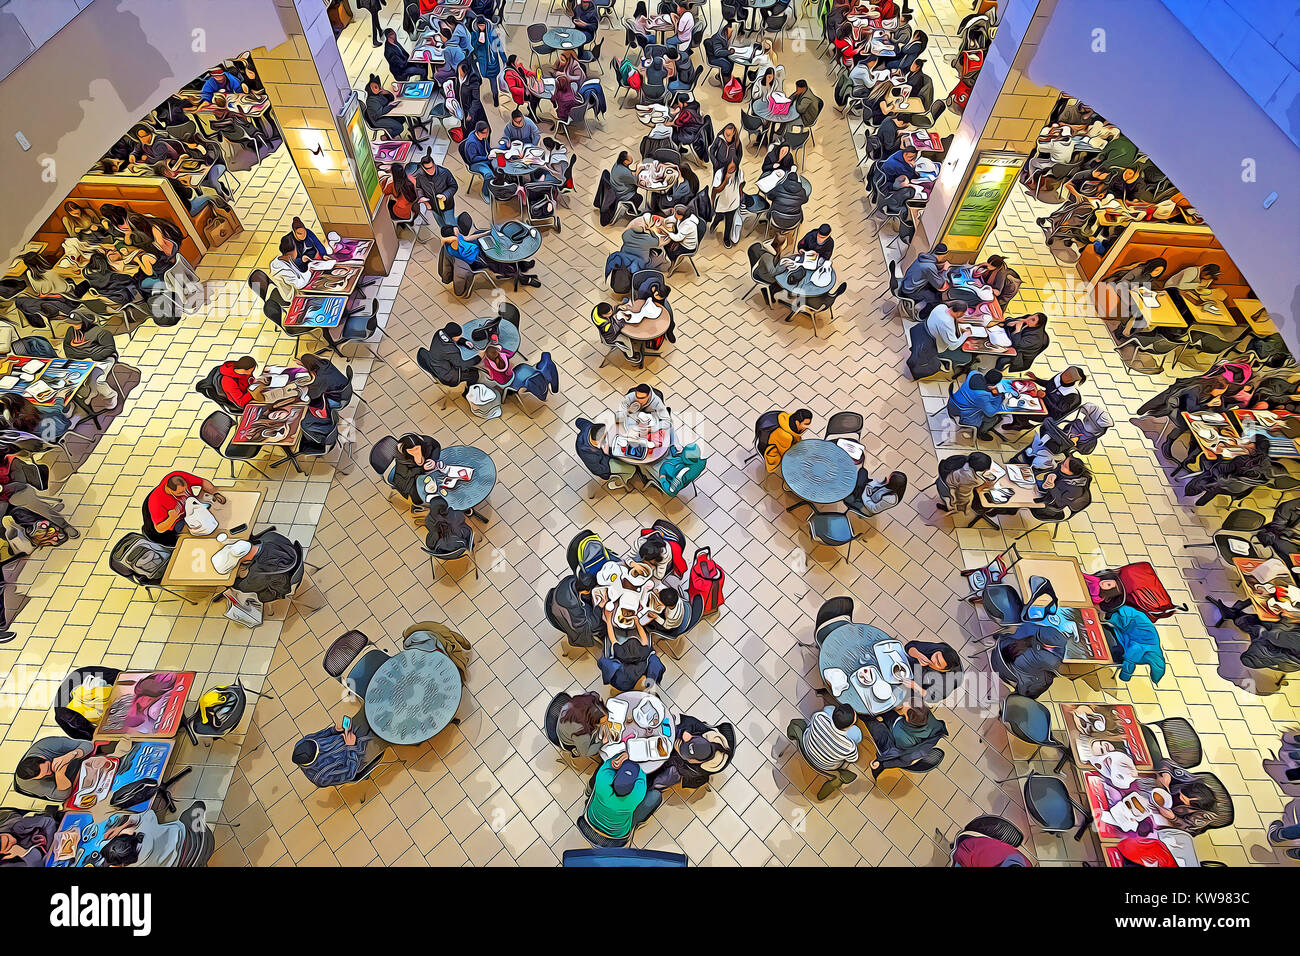 A photoshop manipulated view of the crowded Food Court at the Queens Center shopping mall in Elmhurst, Queens, New - Stock Image